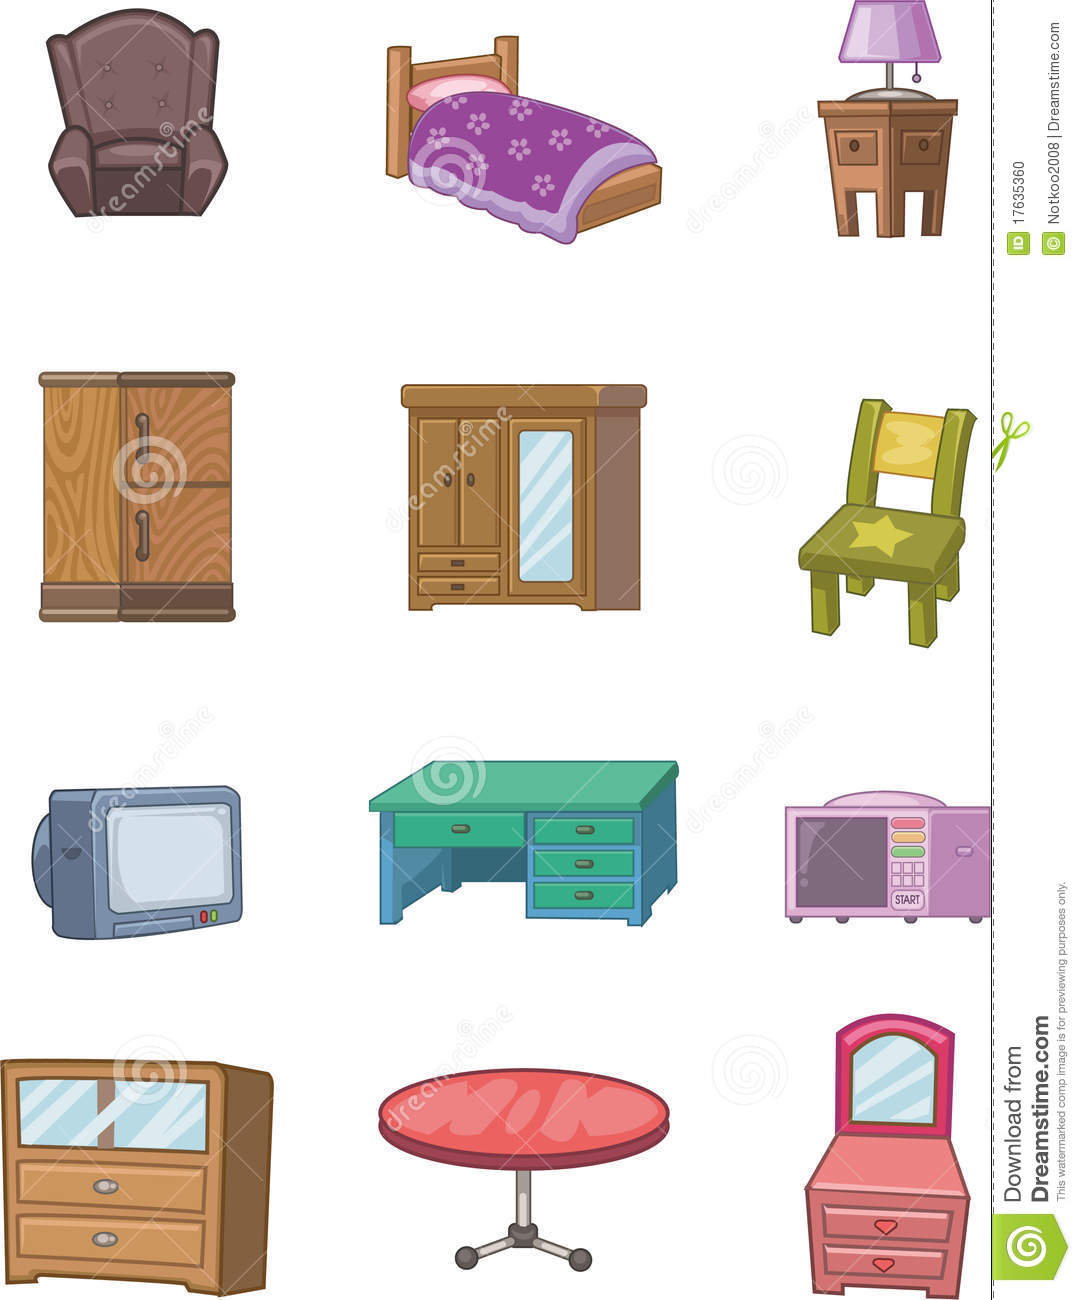 Cartoon Furniture Icon Stock Photo Image 17635360